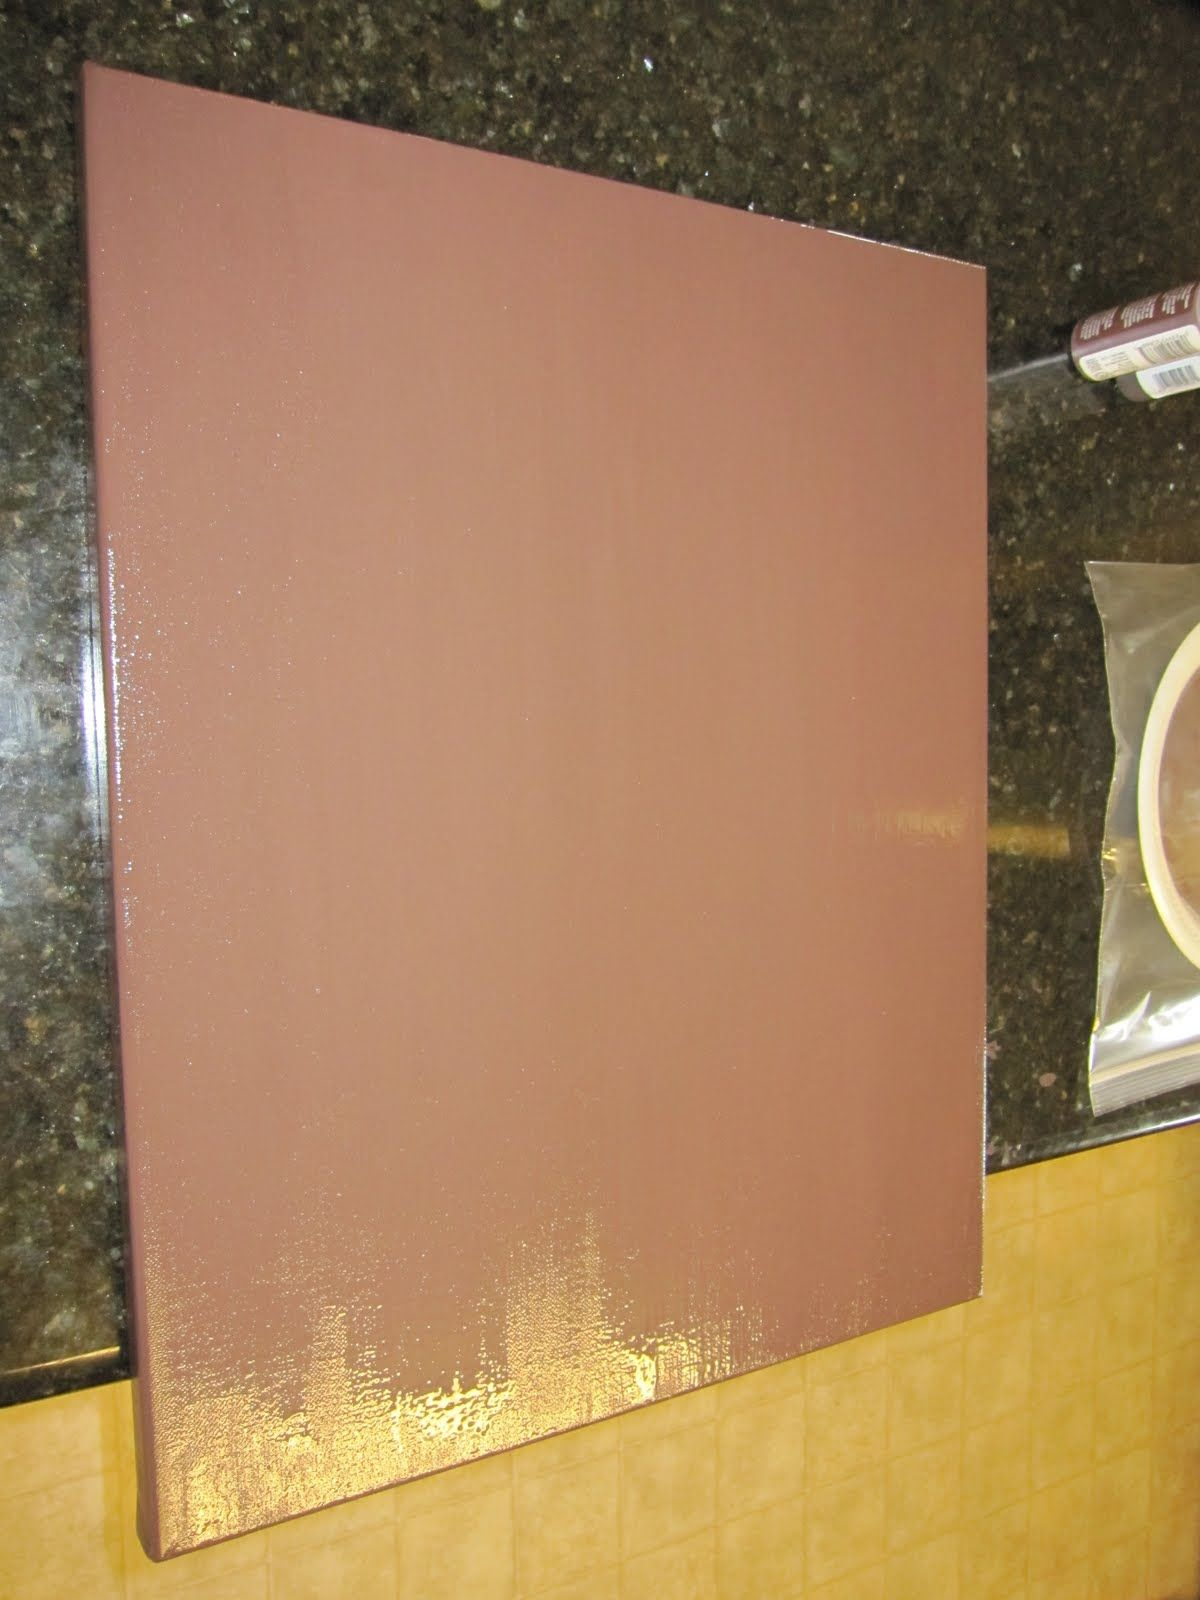 How To Apply Vinyl Decals To Canvas Canvases Cricut And Walls - Can i put a wall decal on canvas